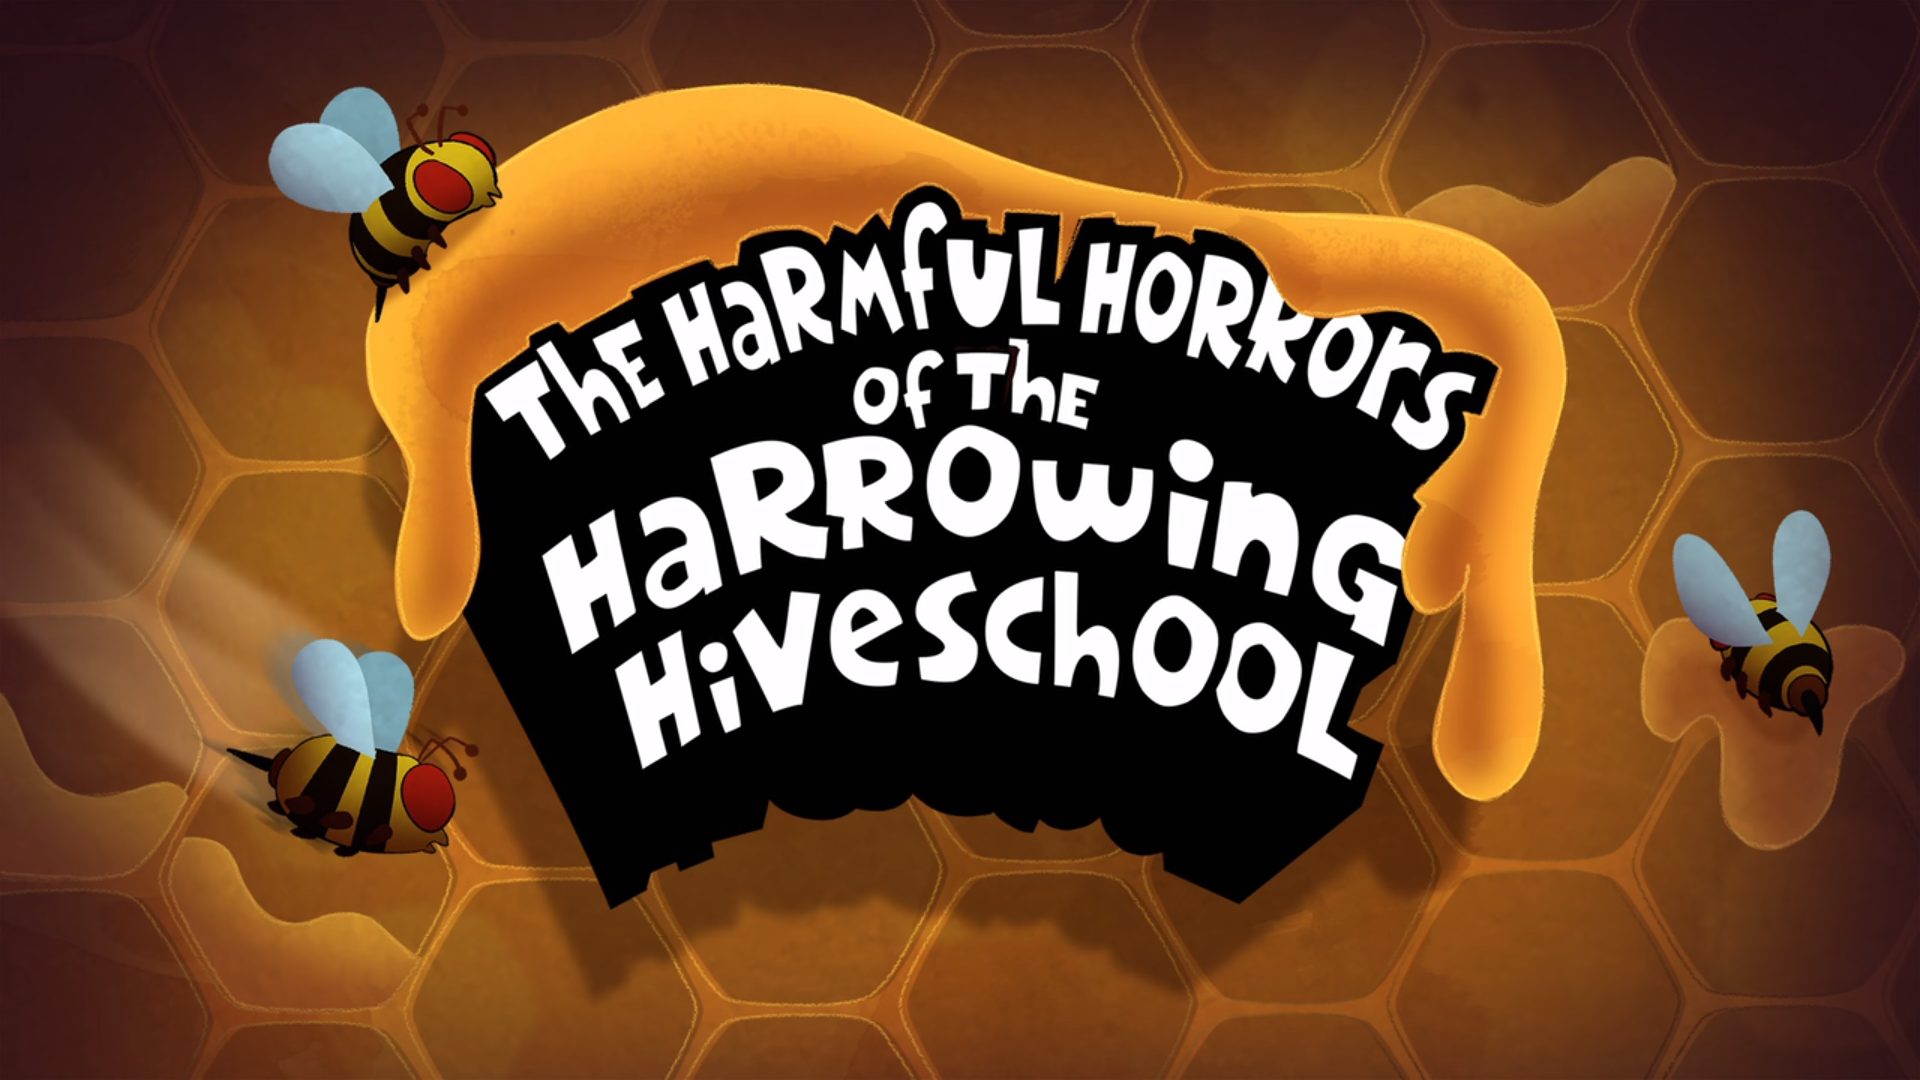 The Harmful Horrors of the Harrowing Hiveschool